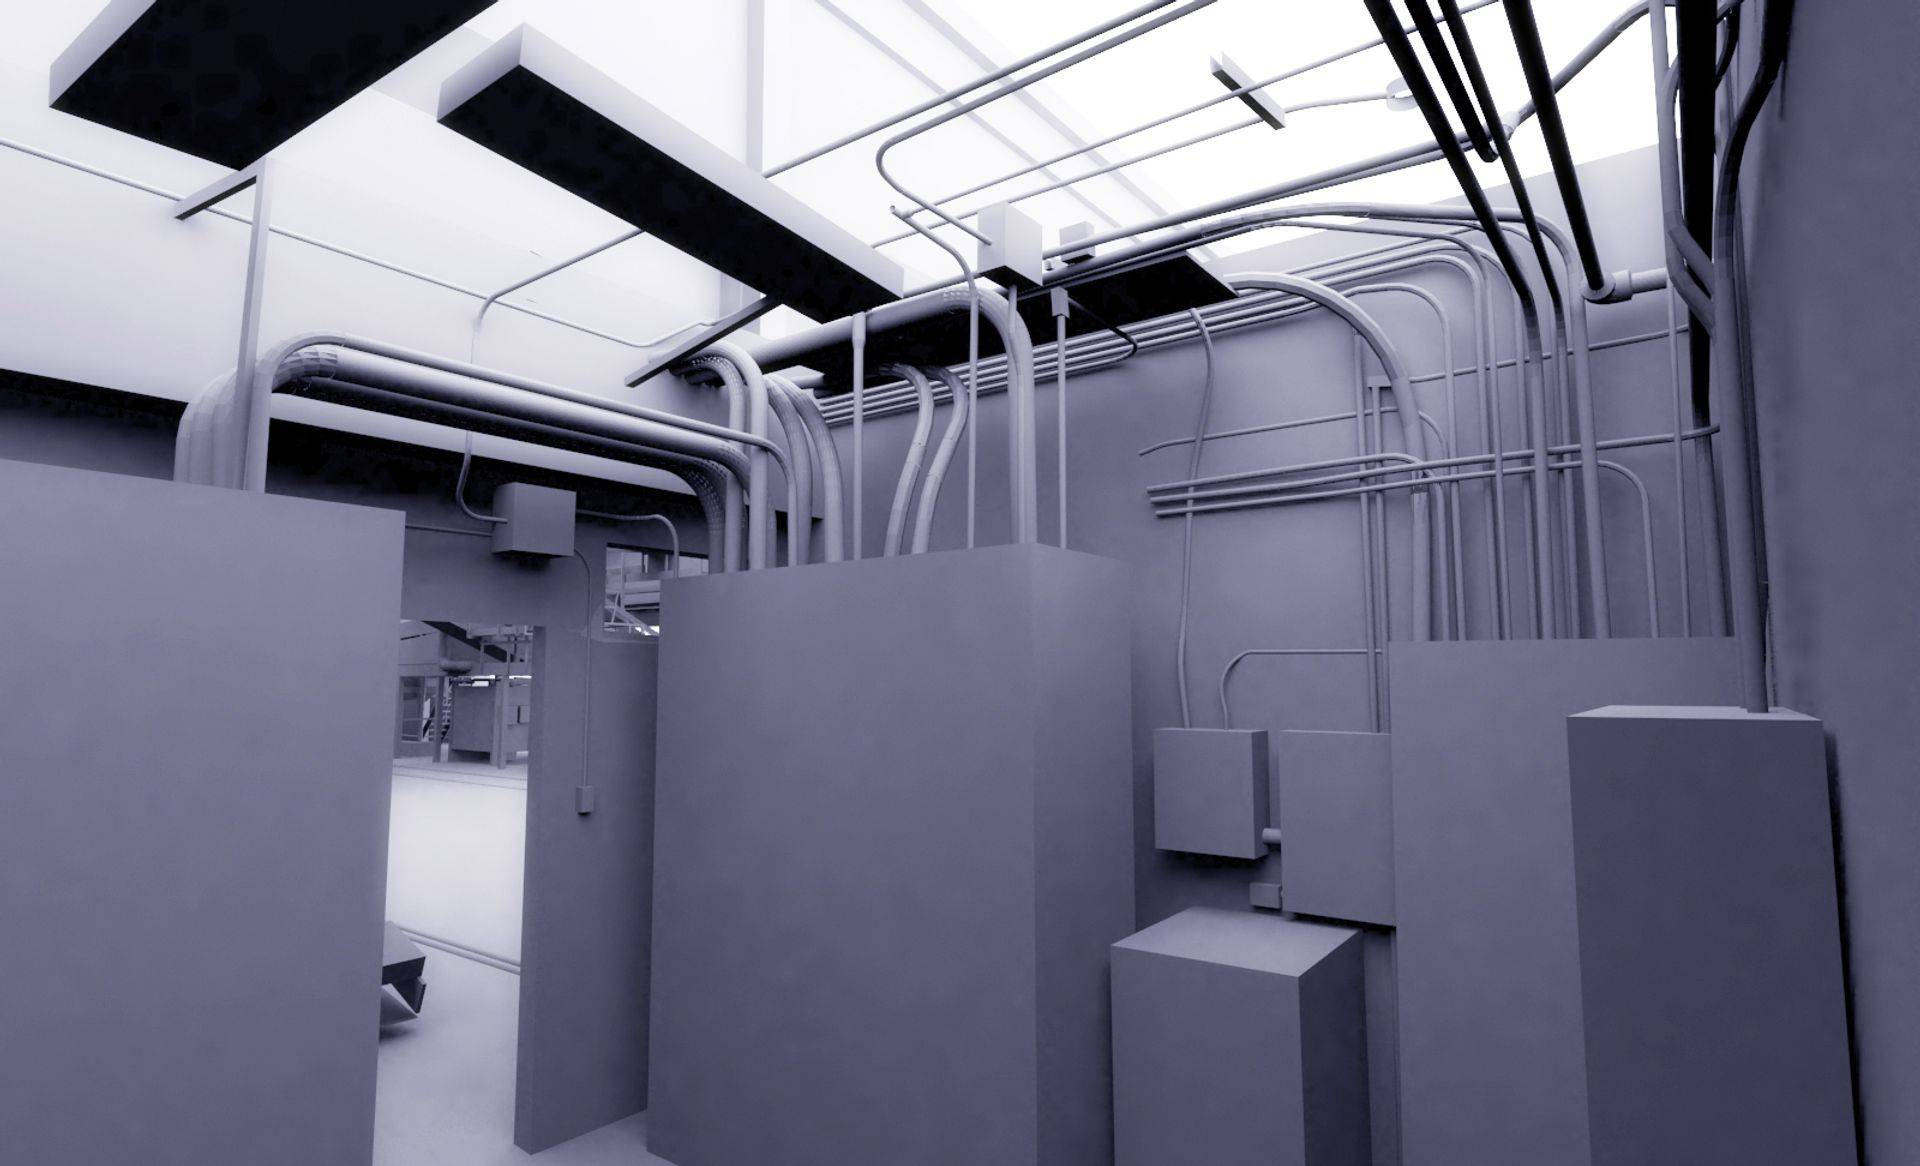 Electrical room 3D rendering from 3D scanner